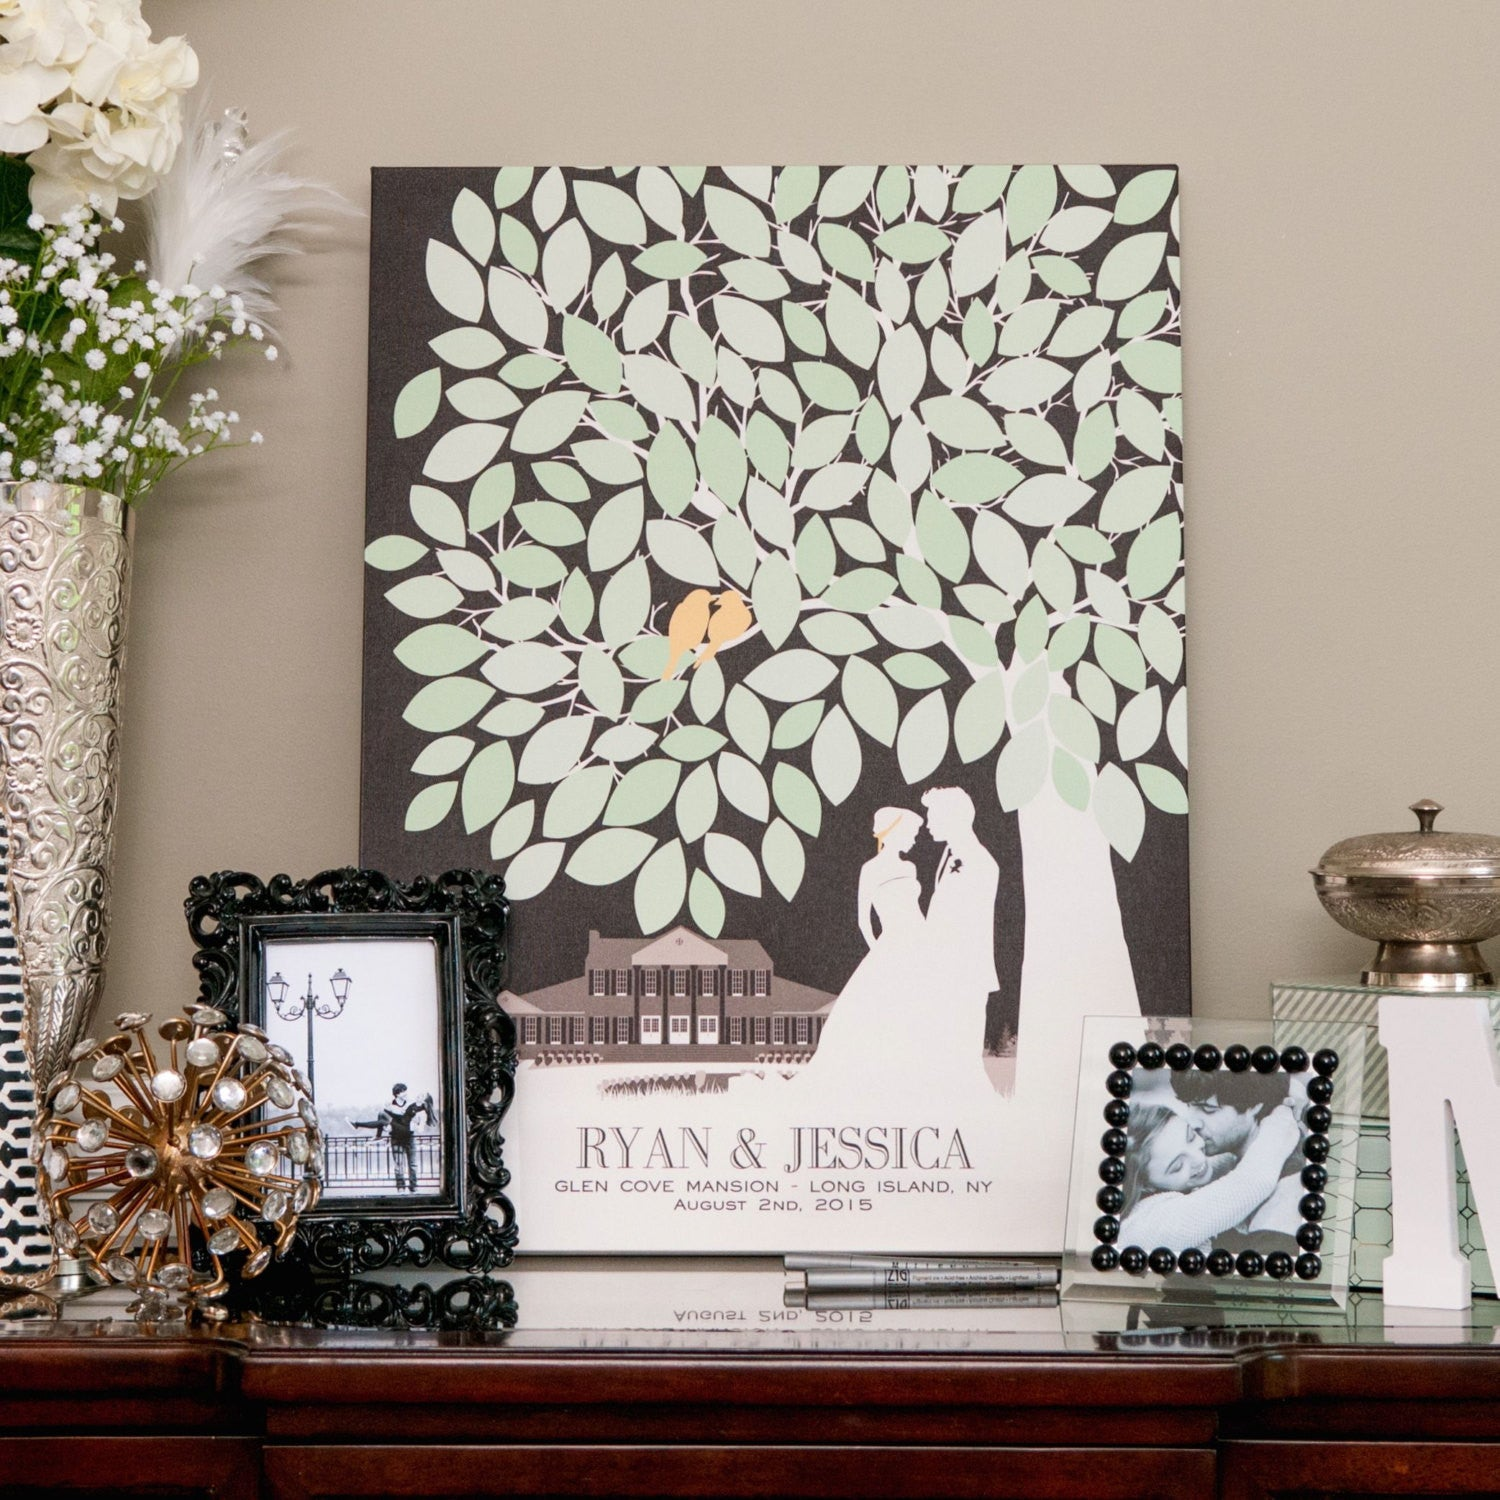 Signature guest book for your wedding